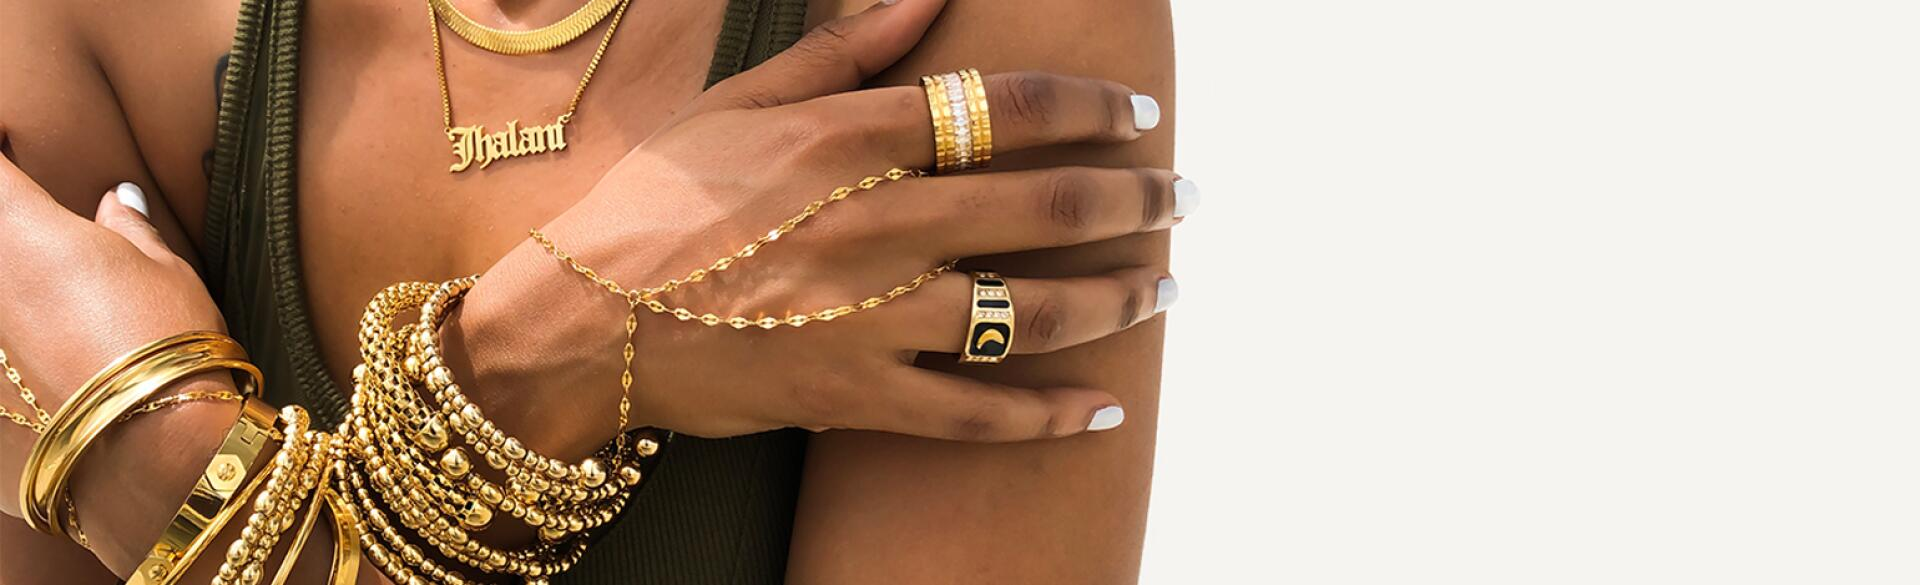 Black woman with layers of gold jewelry